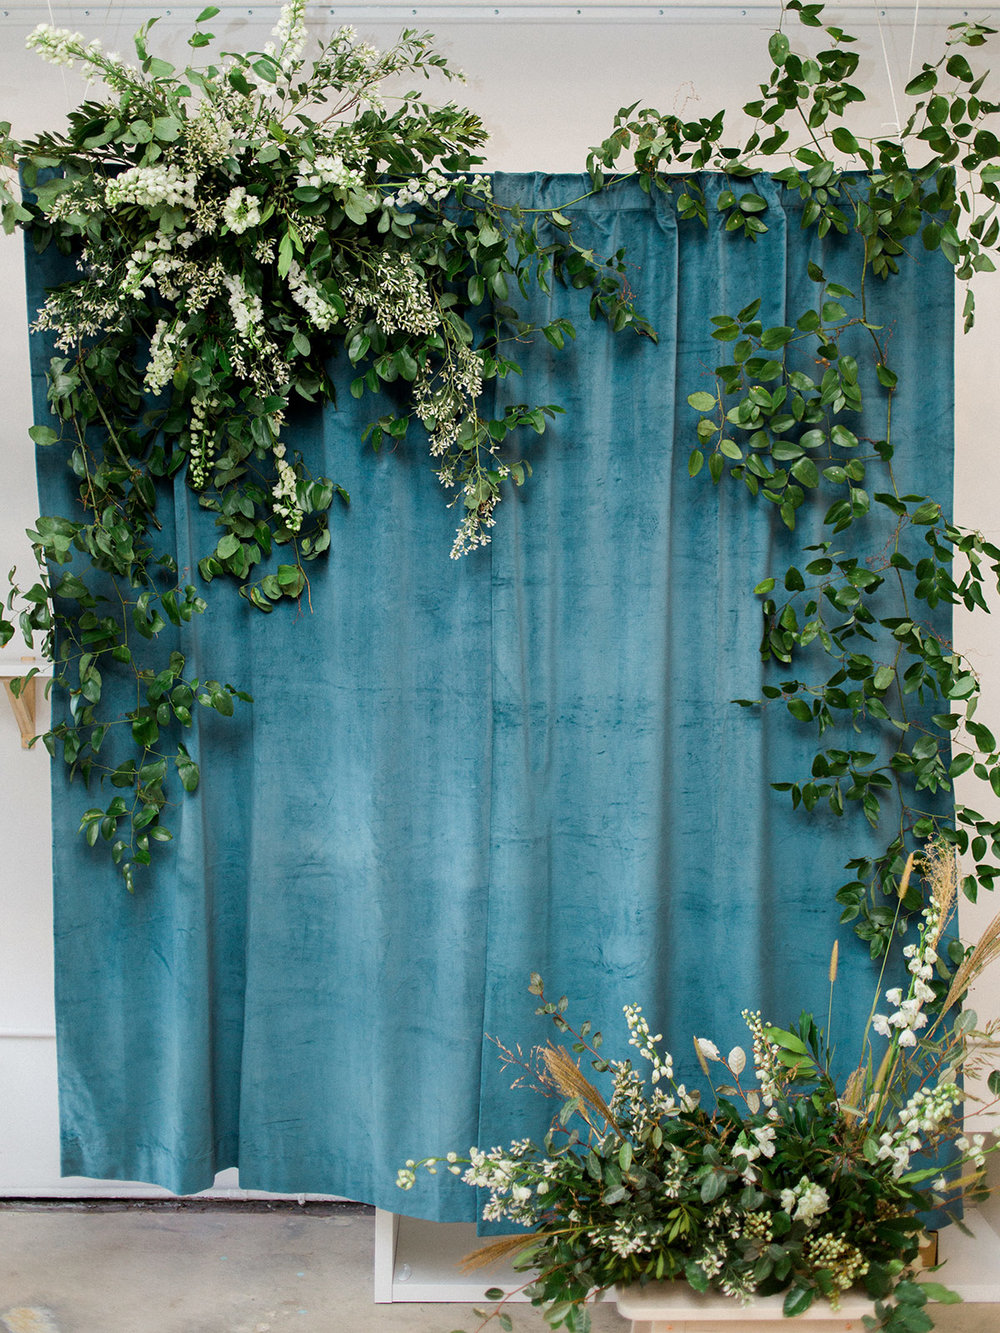 Our party backdrop. We love a good excuse to get on a ladder and hang some flowers.